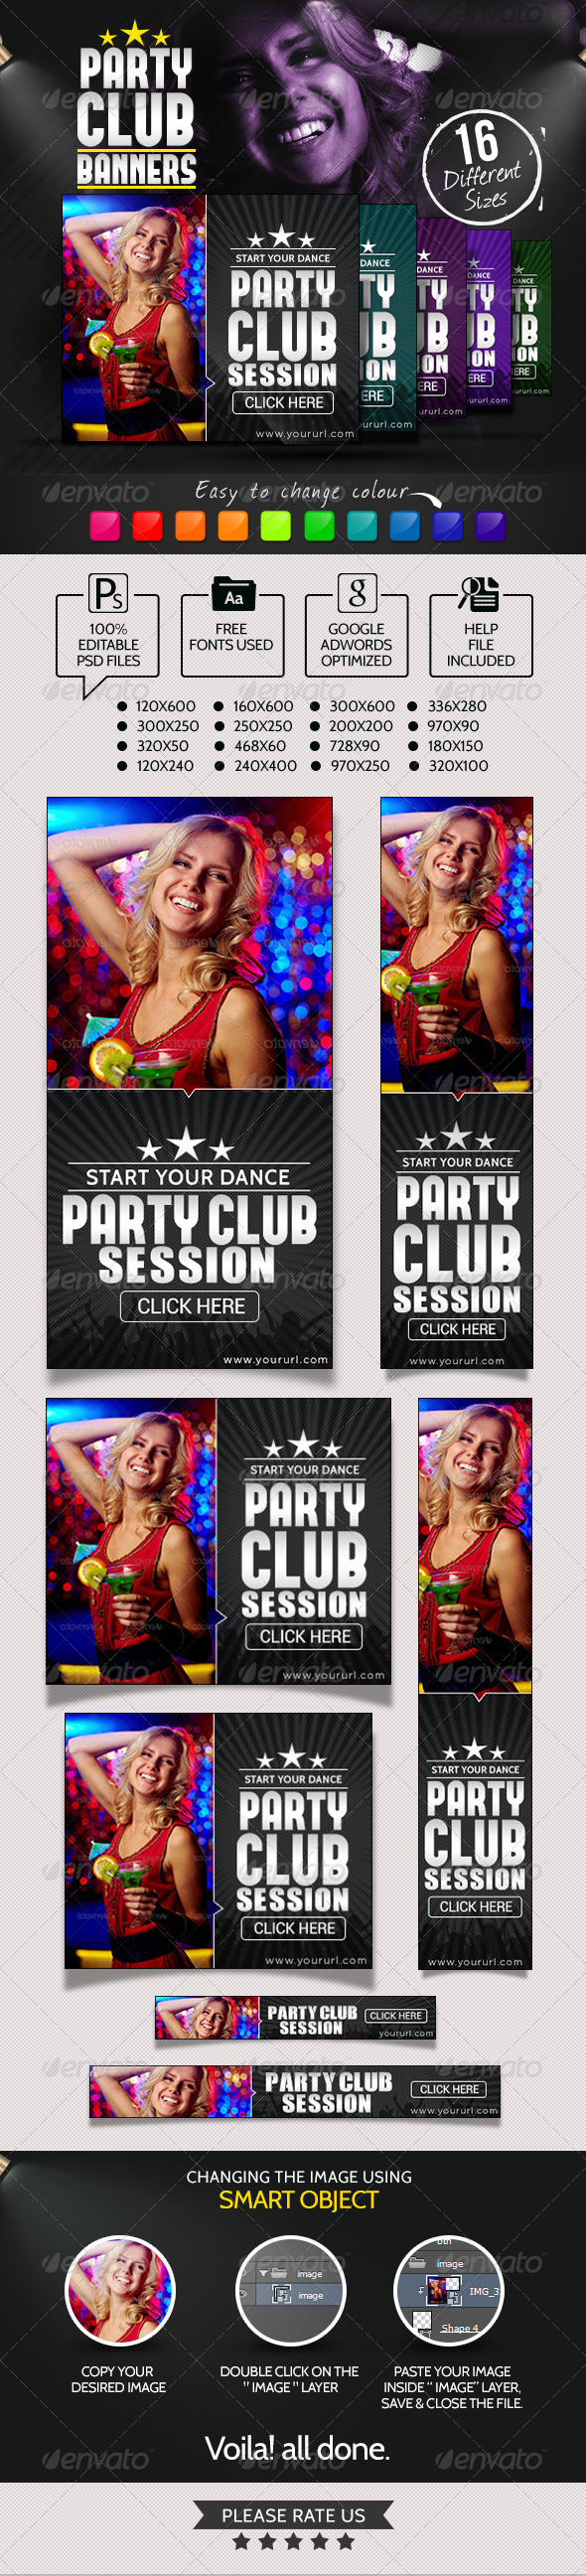 GraphicRiver Club Party Night Banners 7043712